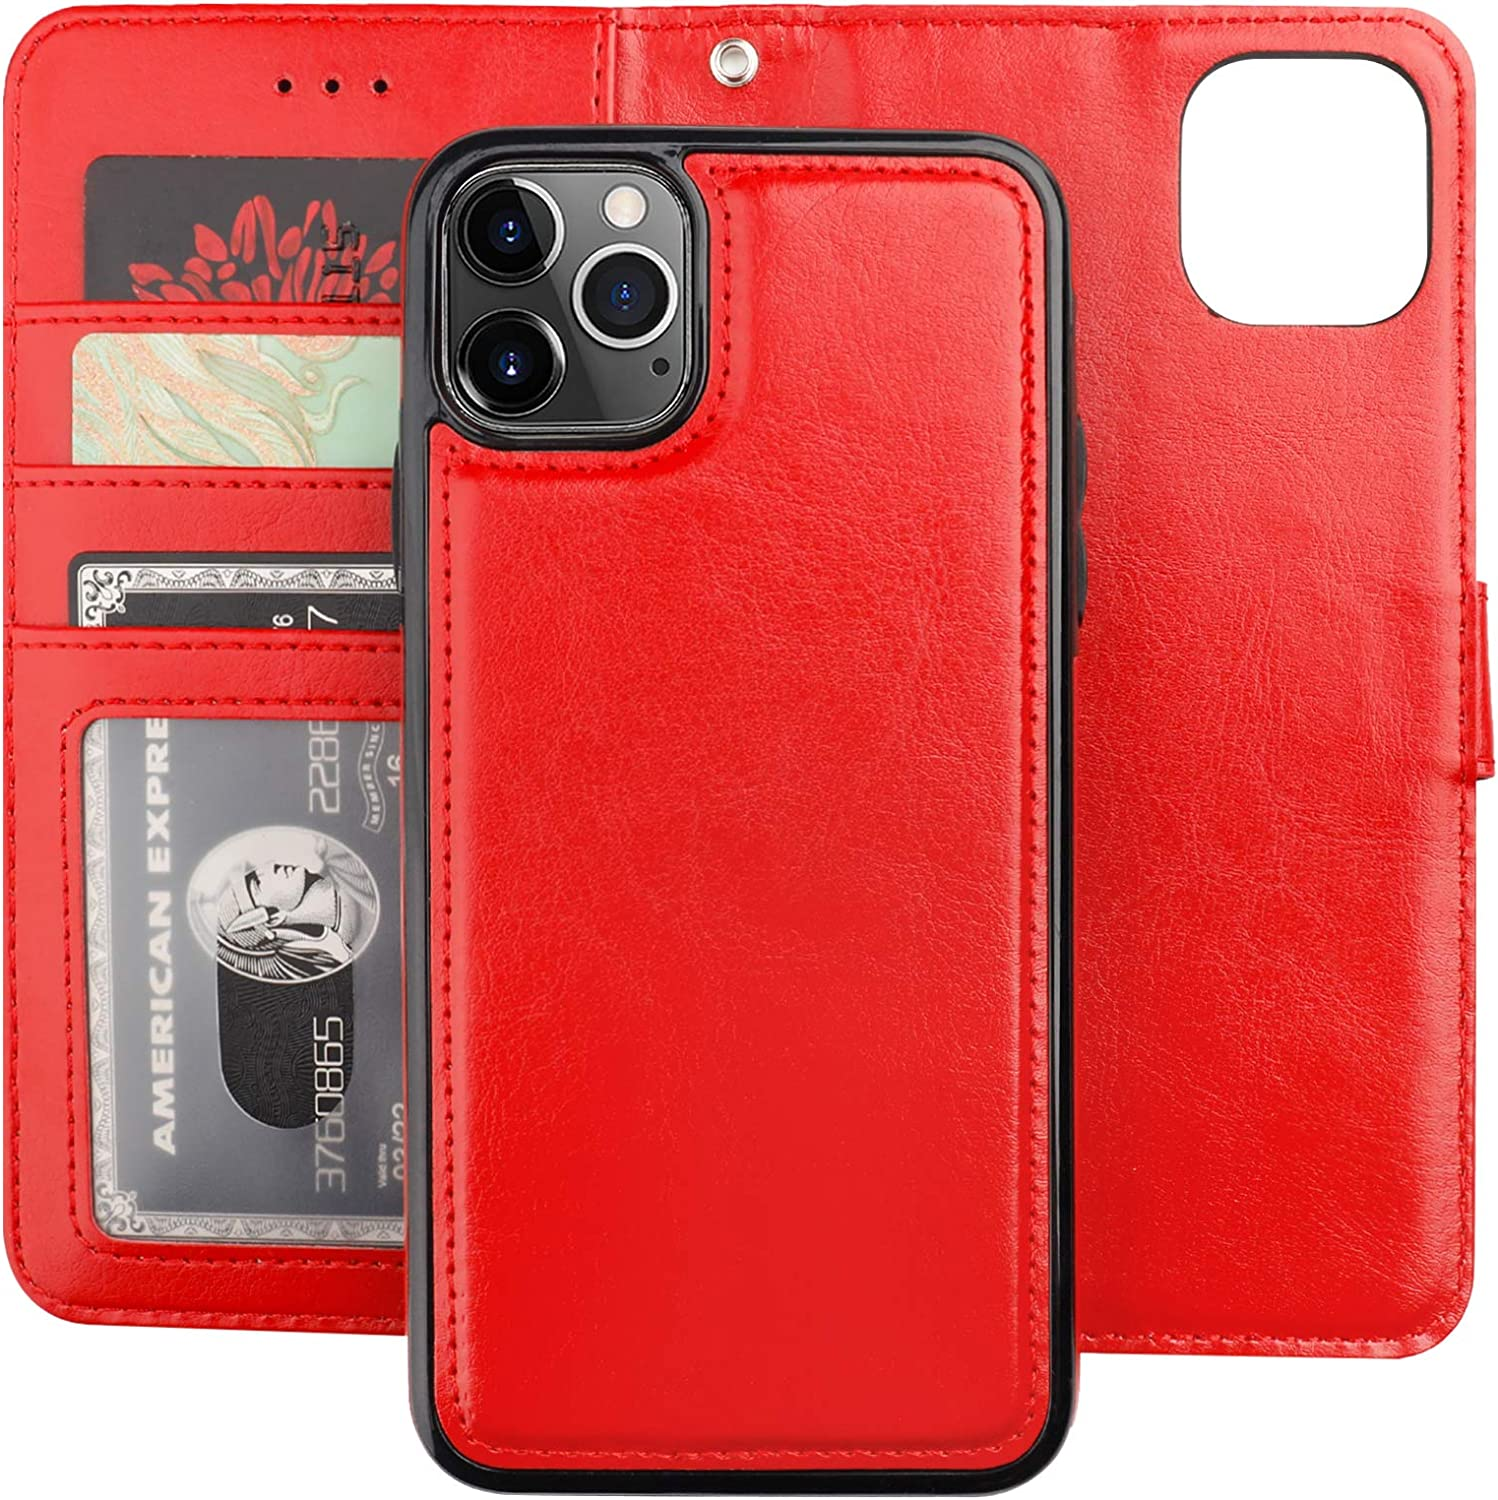 Bocasal iPhone 11 Pro Max Wallet Case with Card Holder PU Leather Magnetic Detachable Kickstand Shockproof Wrist Strap Removable Flip Cover for iPhone 11 Pro Max 6.5 inch (Red)